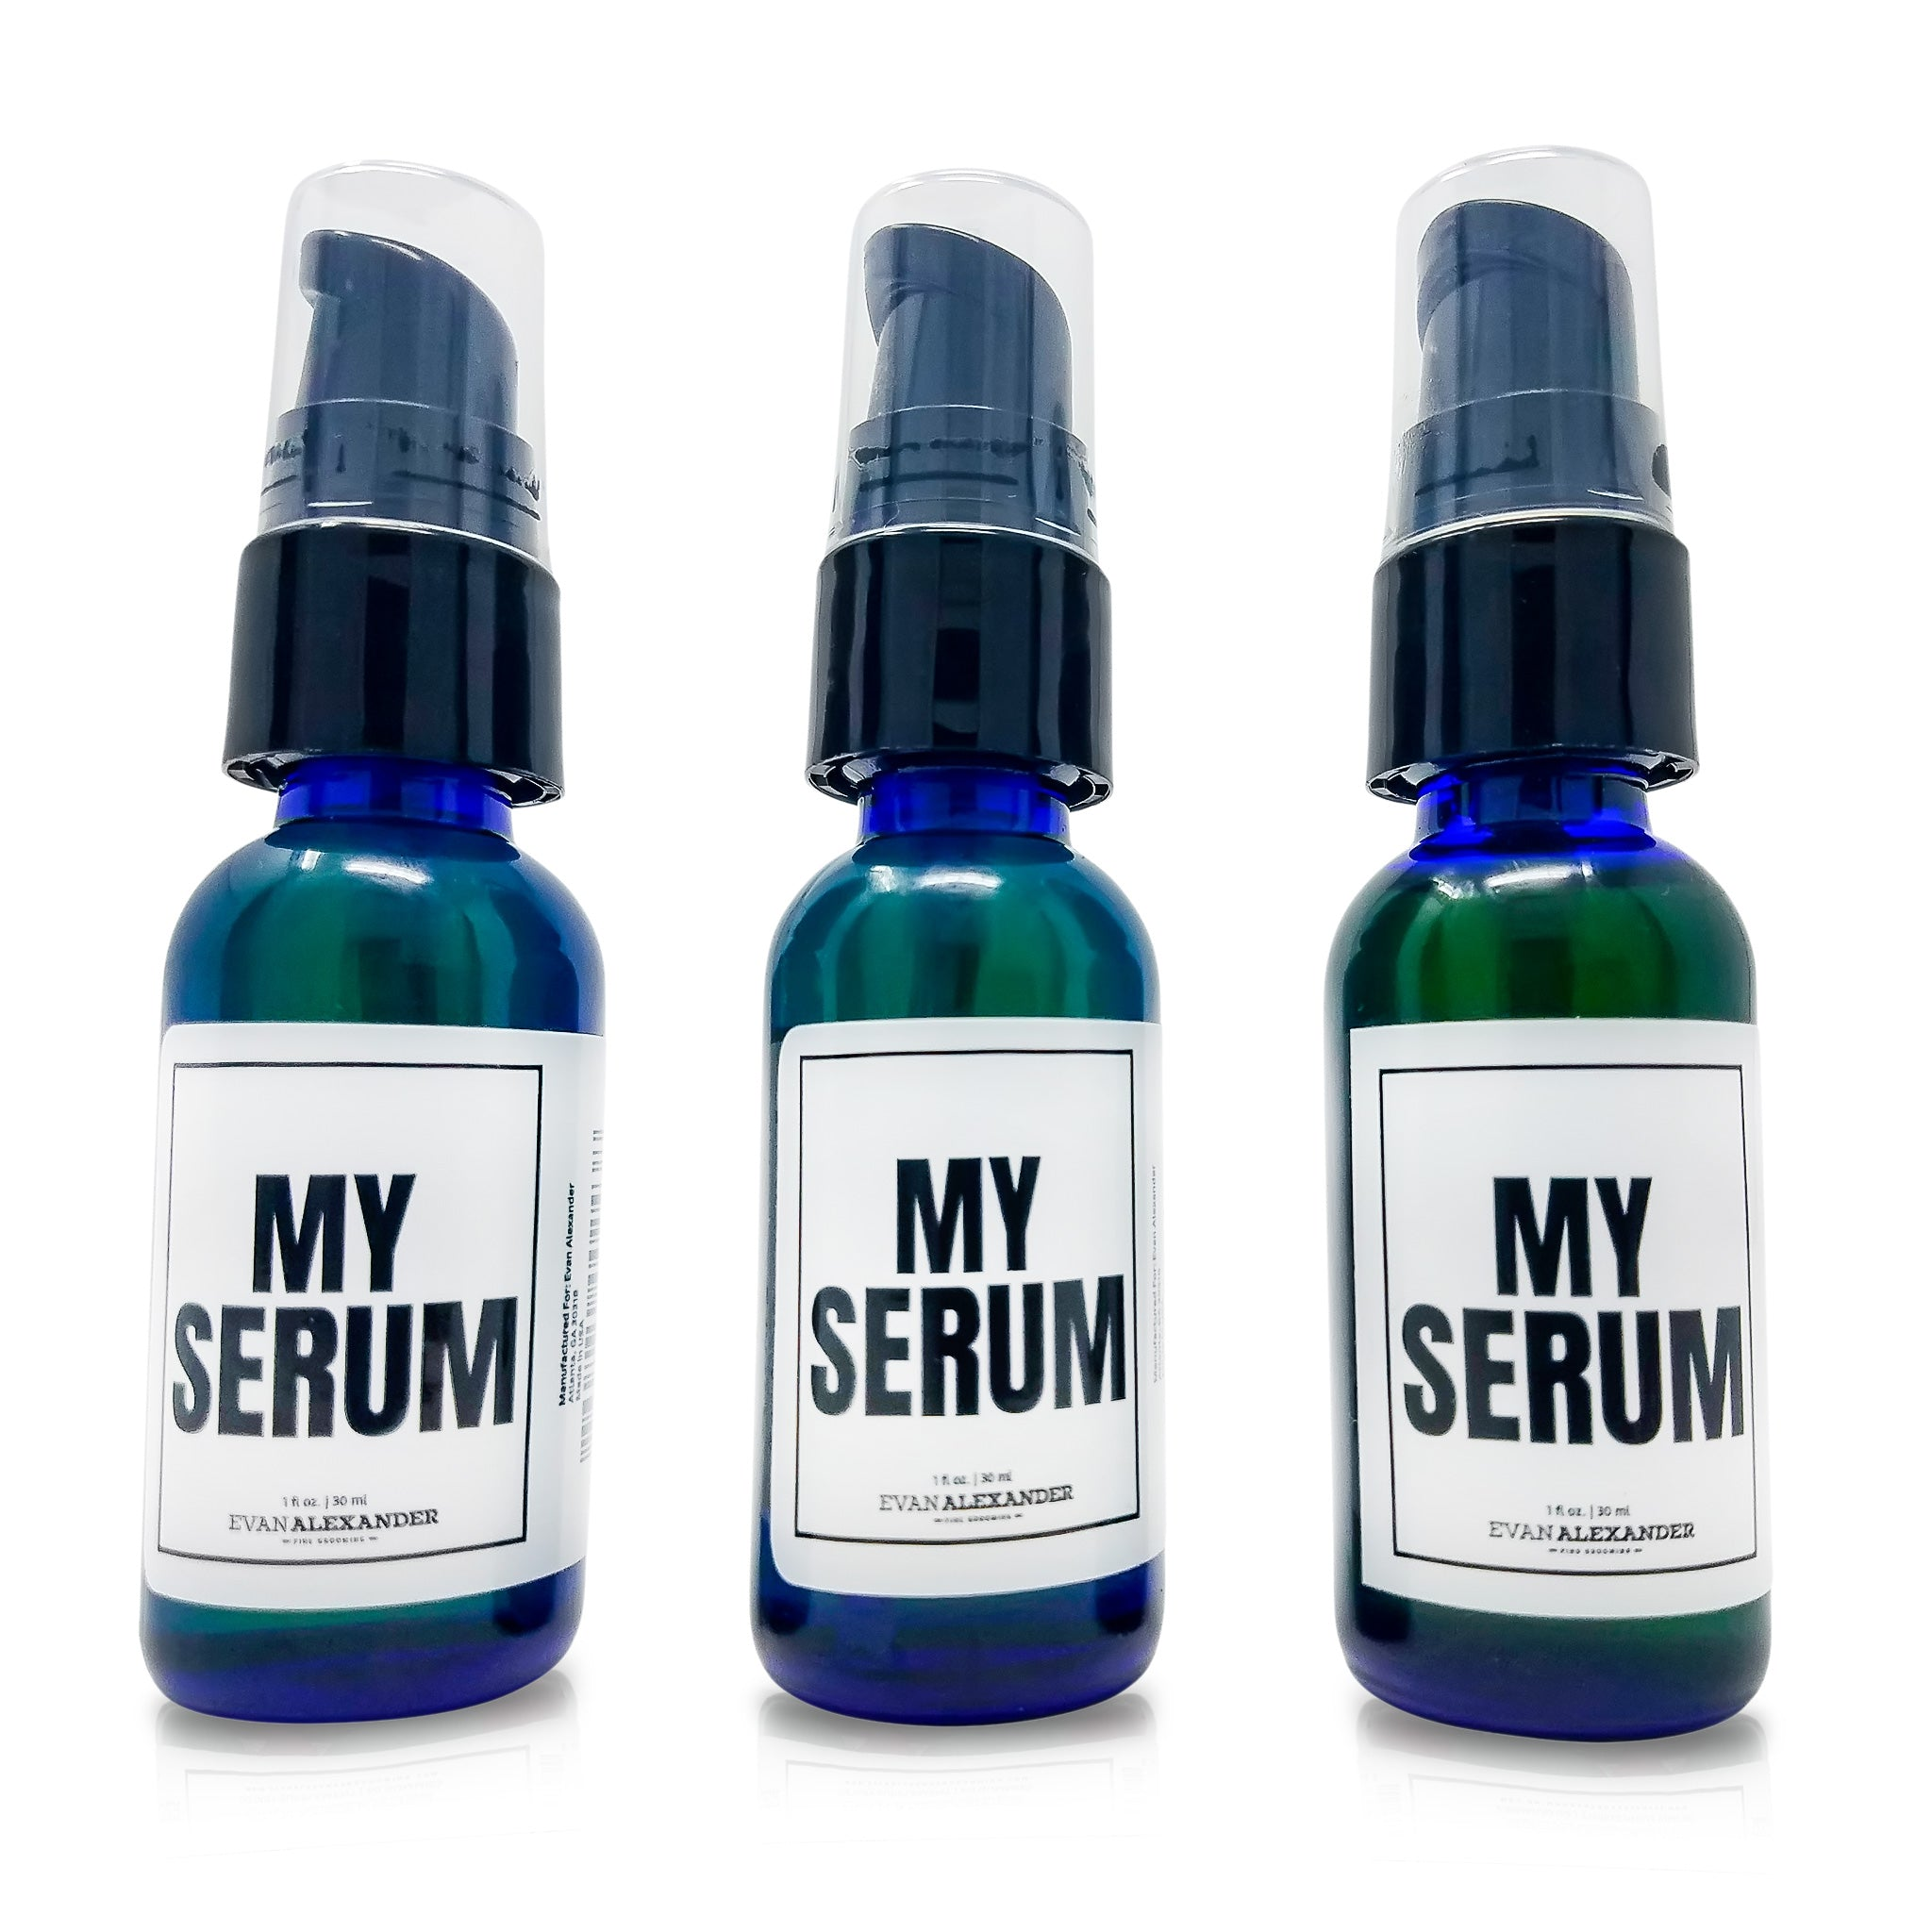 MY SERUM COLLECTION